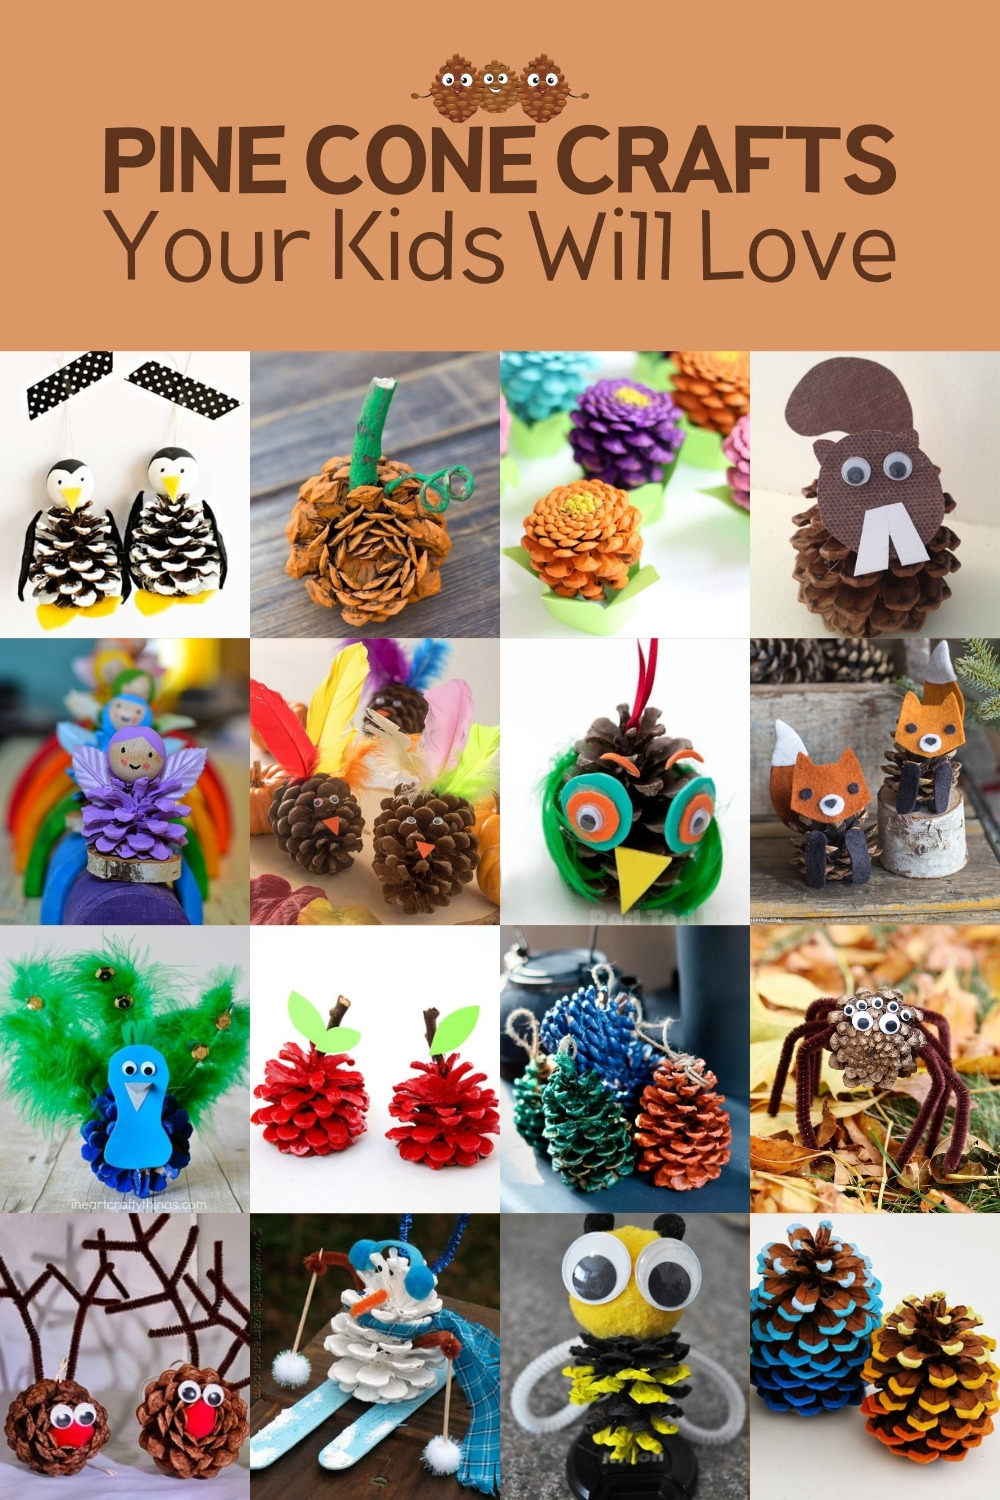 25 Pine Cone Crafts Your Kids Will Love